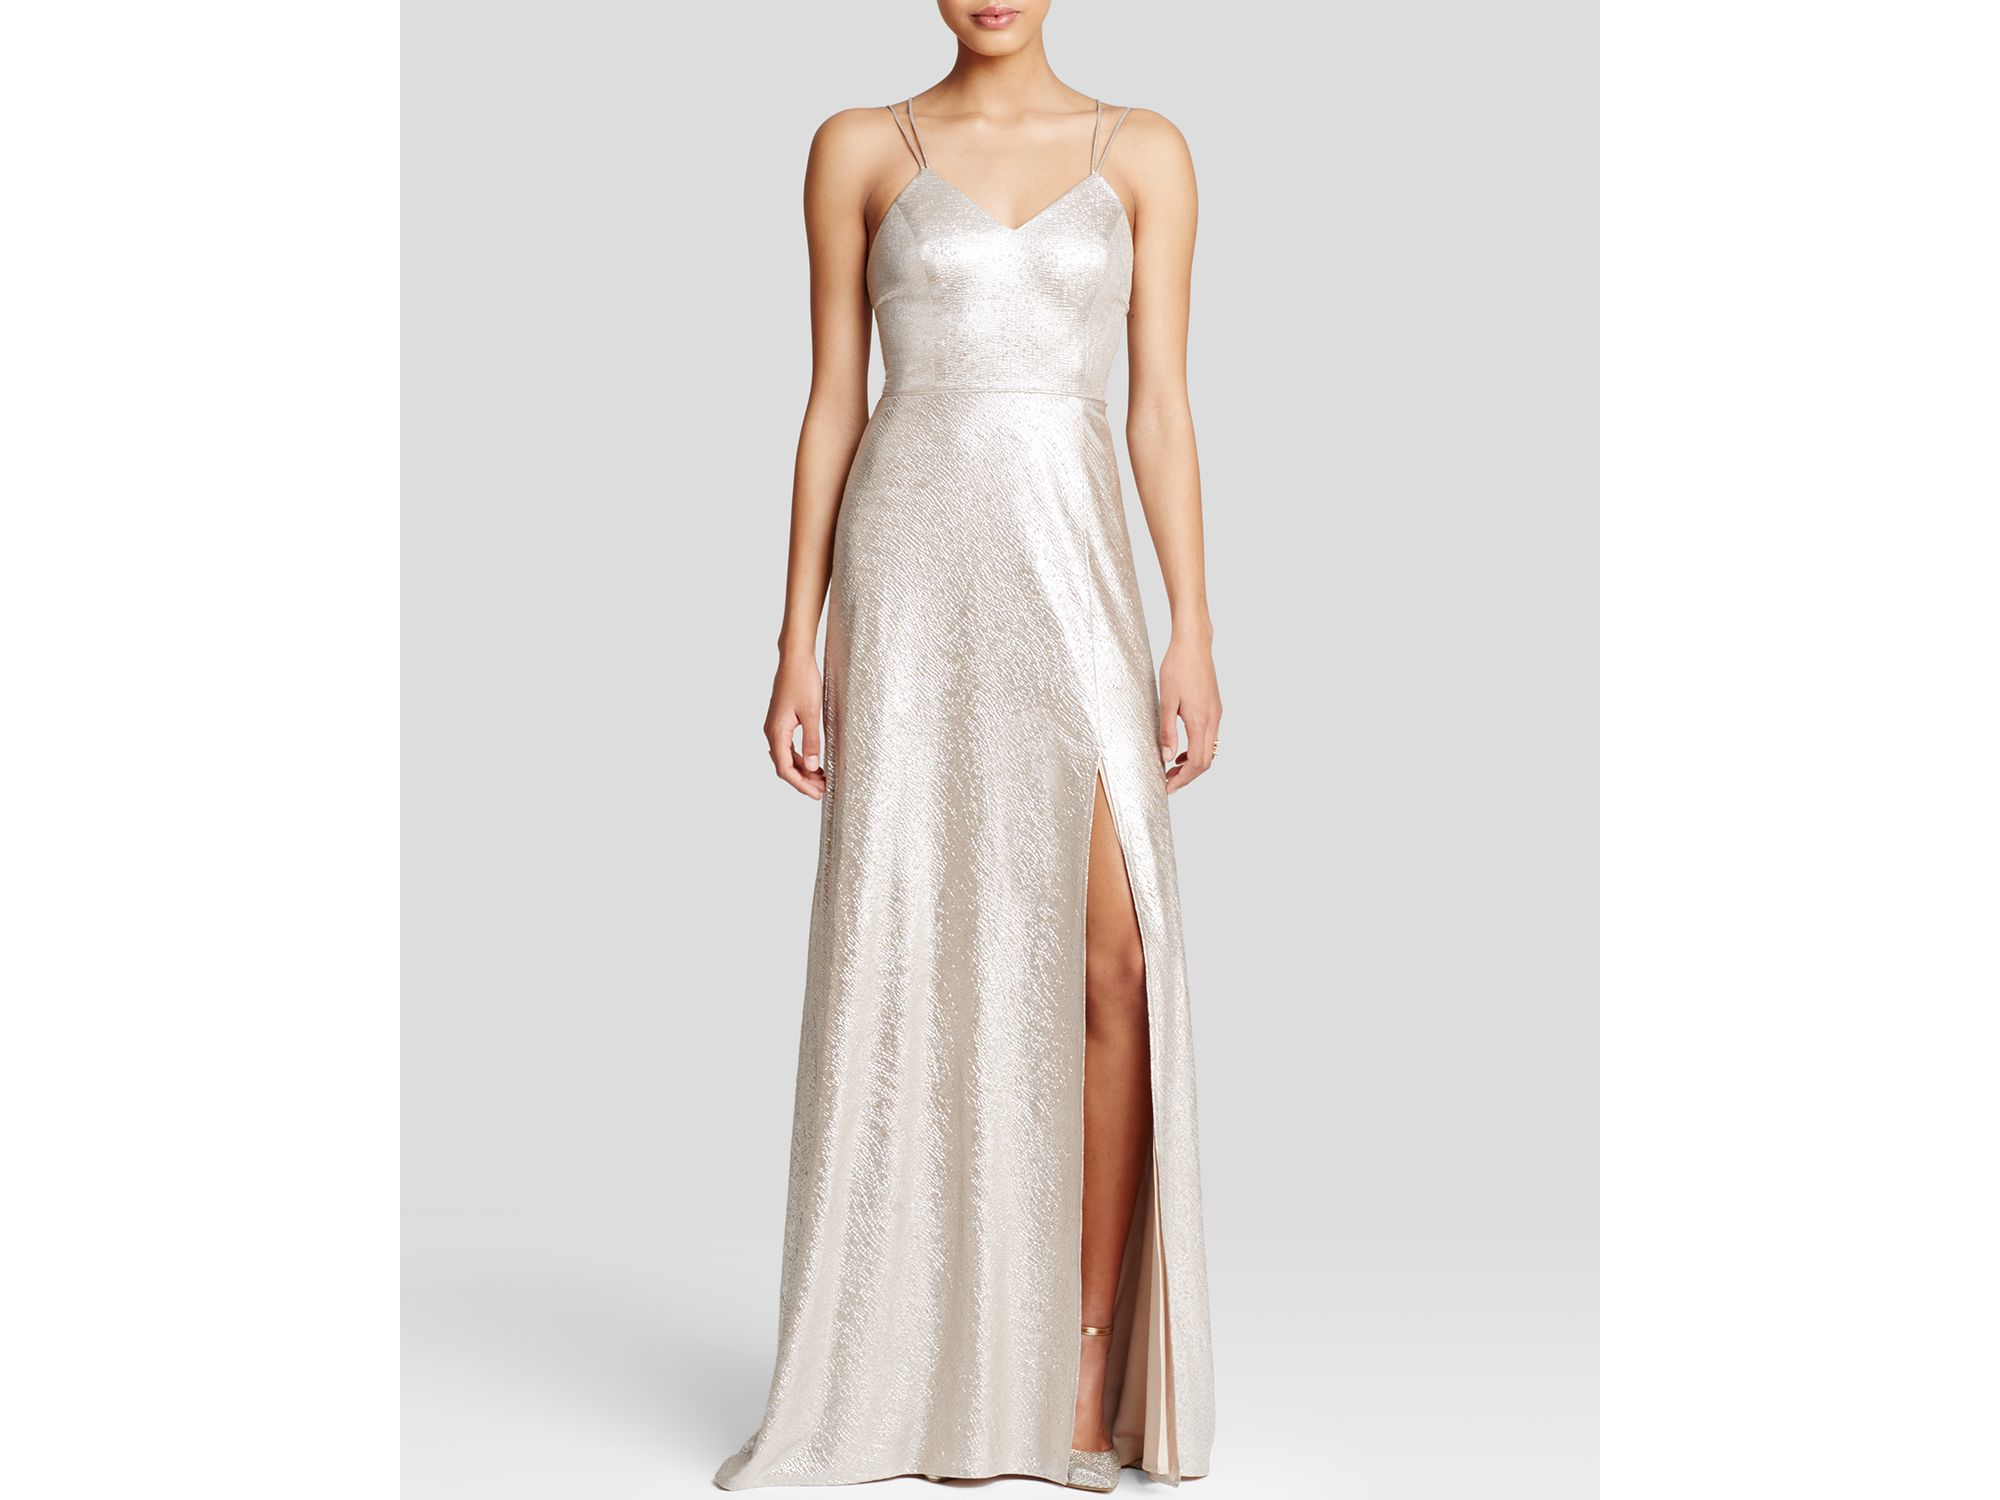 Lyst - Abs By Allen Schwartz Gown - Sleeveless Metallic Slip in Metallic